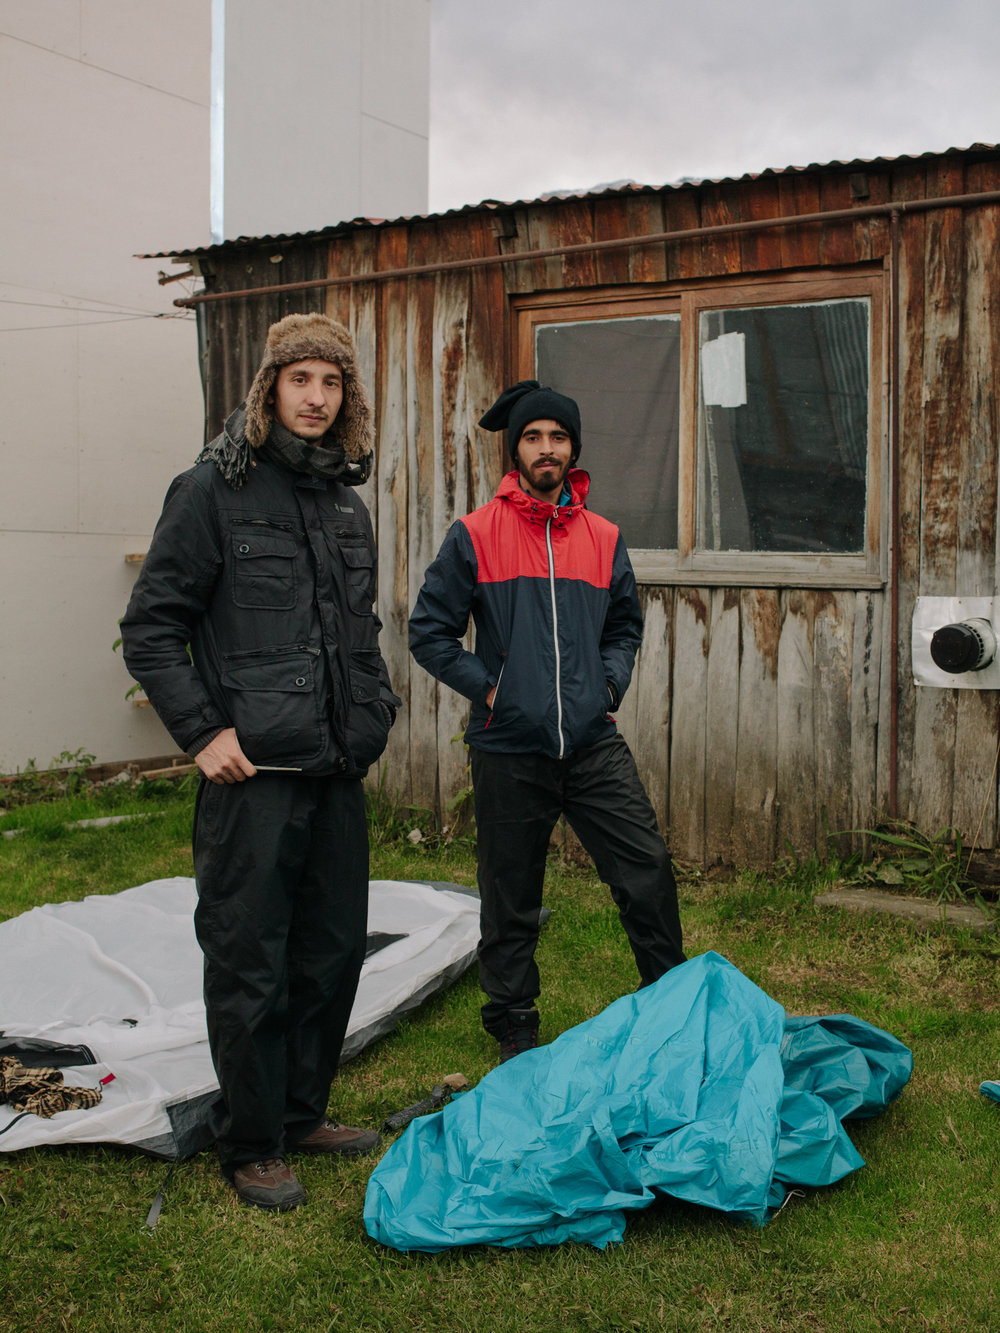 Yuri and Estevan, two backpackers from Brazil setting up their tent in a private garden of a couchsurfer. Due to the very expensive cost for accommodations in Ushuaia, many young travelers decide to use alternative ways of traveling.